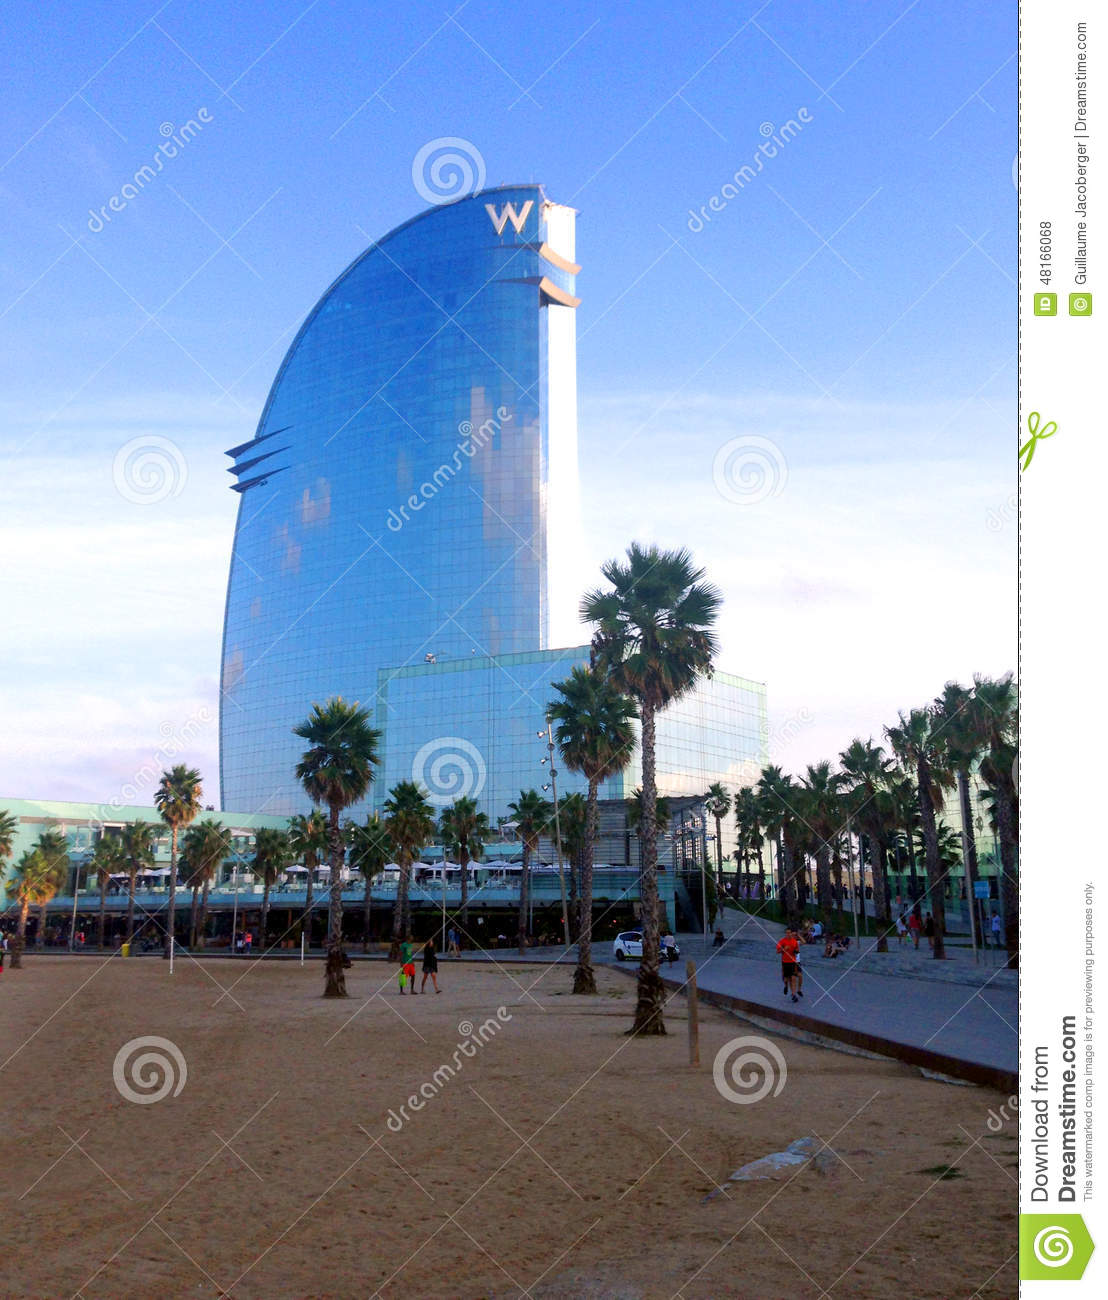 W hotel barcelona editorial stock photo image 48166068 for Design hotel w barcelona